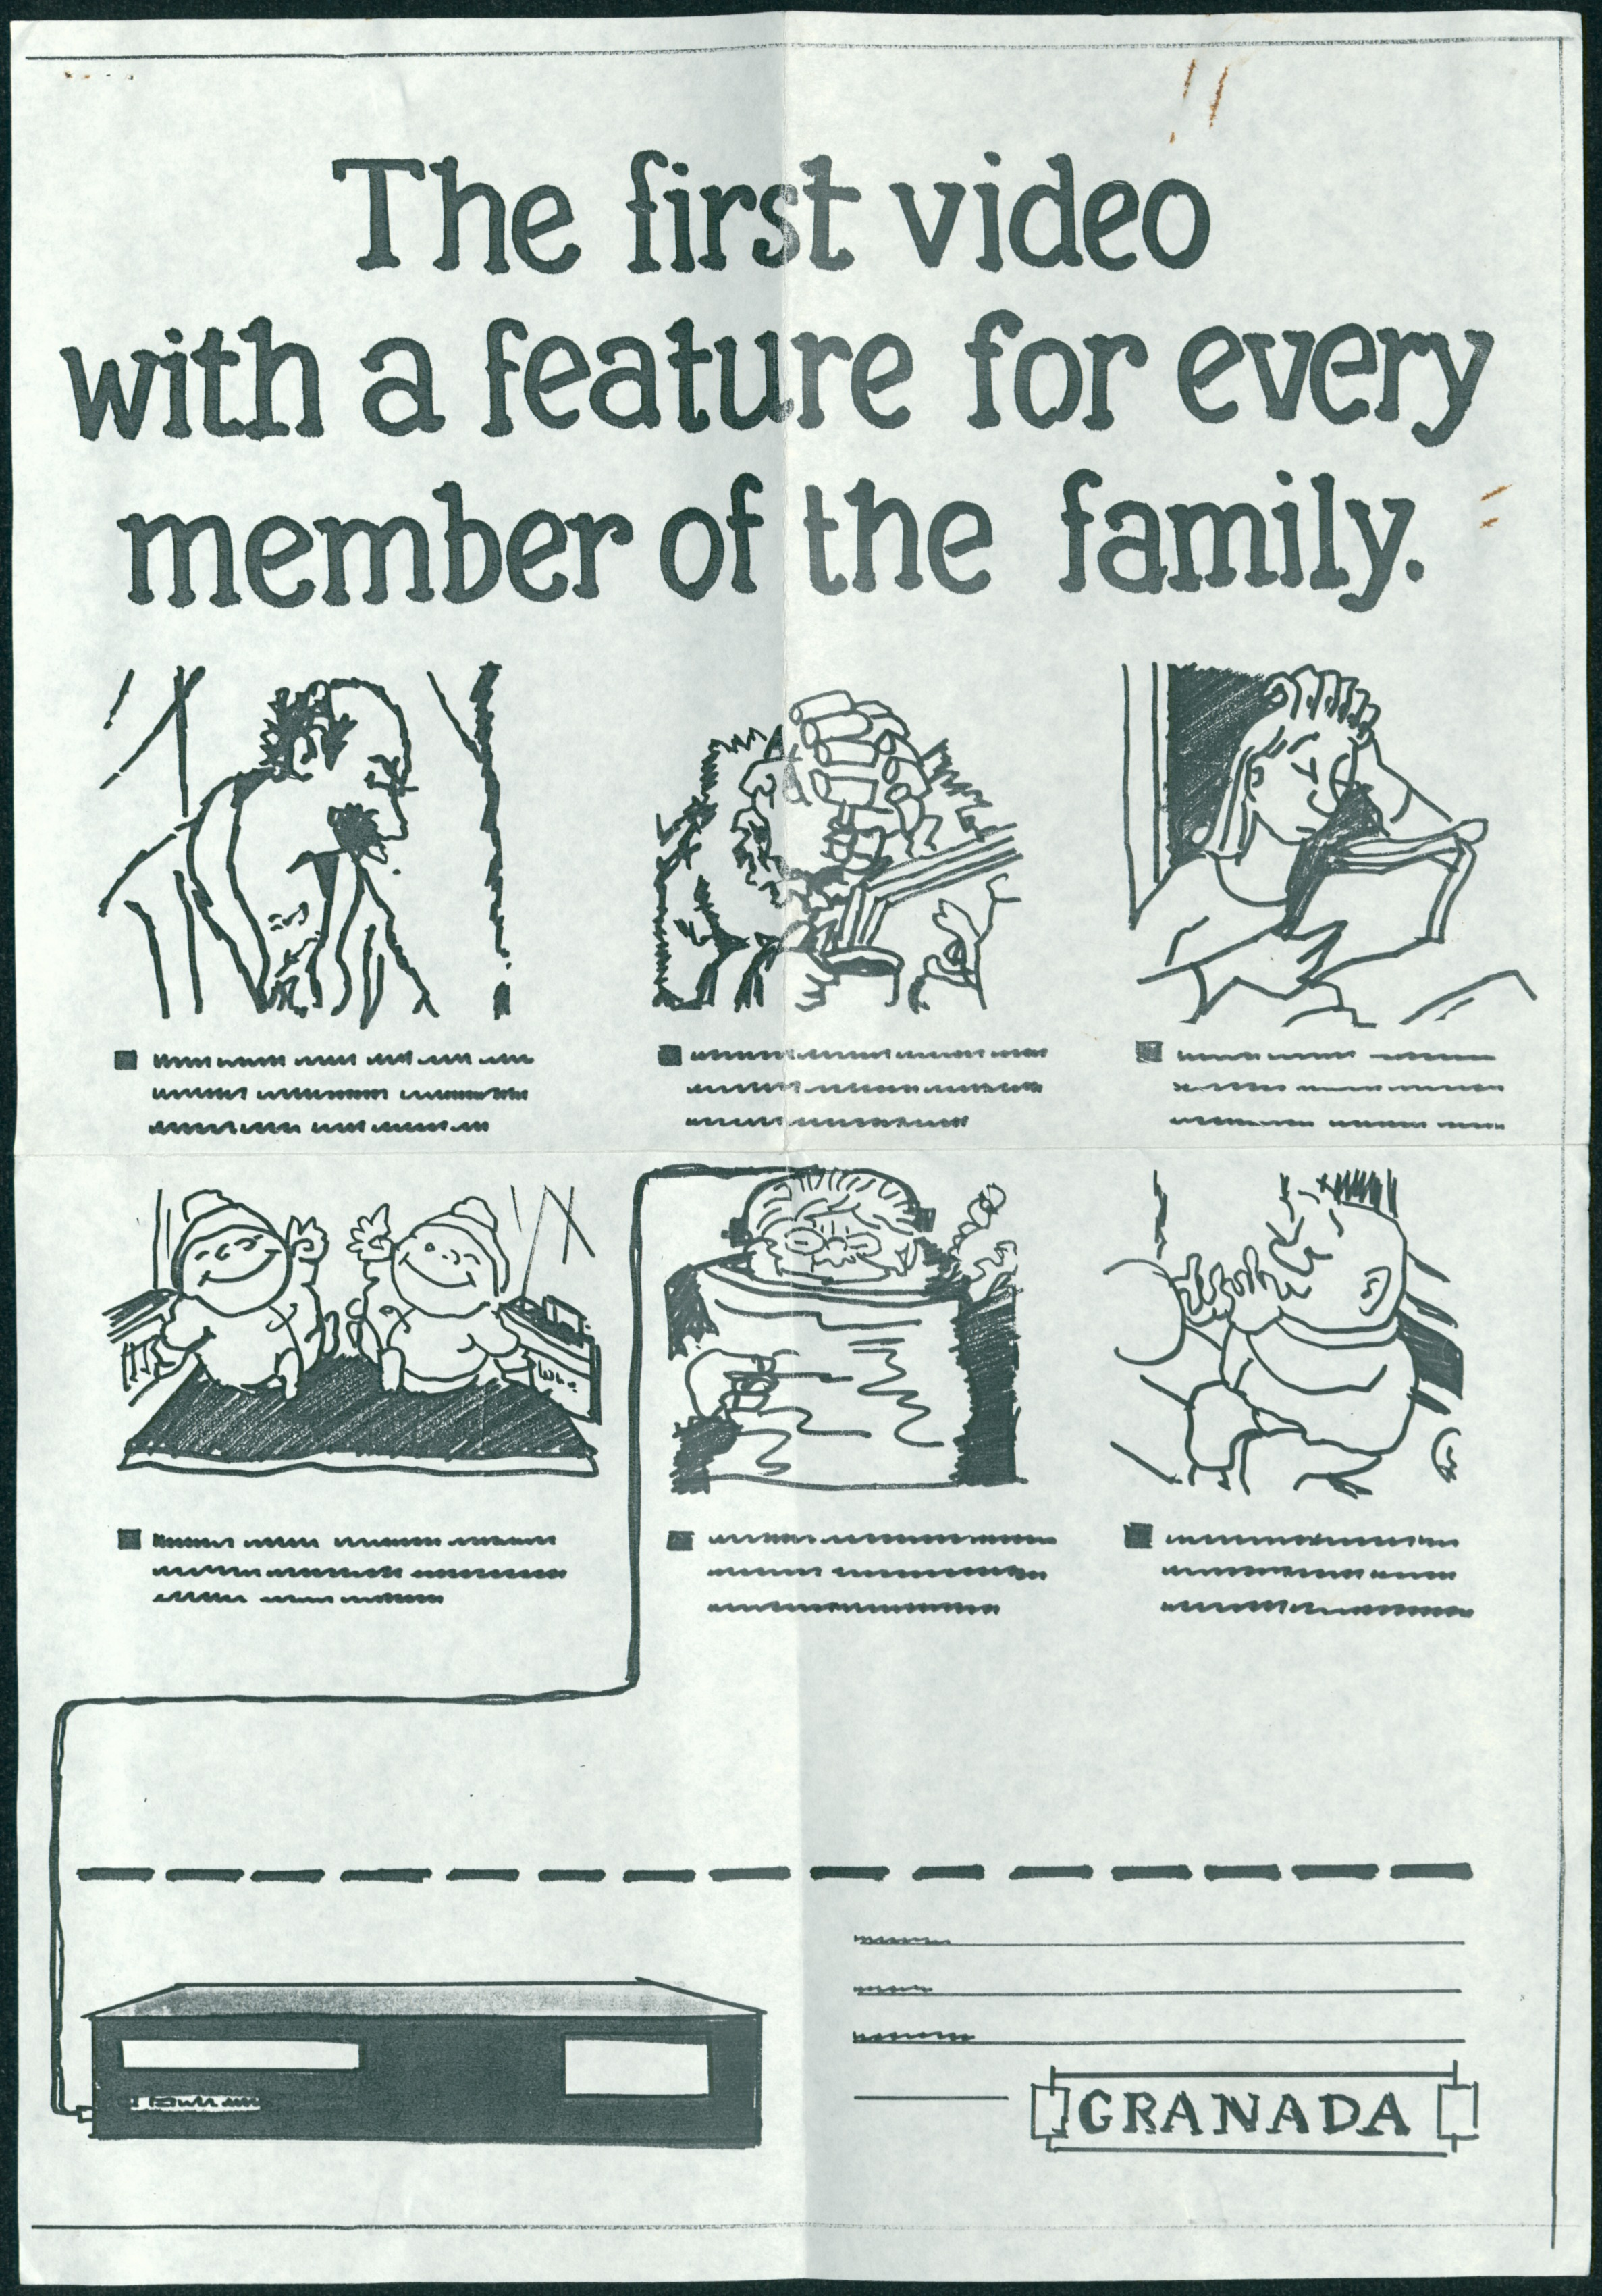 Photocopy of rough draft for proposed advert for Granada video players featuring members of the Giles family; sent by Group X Advertising with request for Giles to draw the final version - Group X Advertising, undated (Image ref: GACS00593)